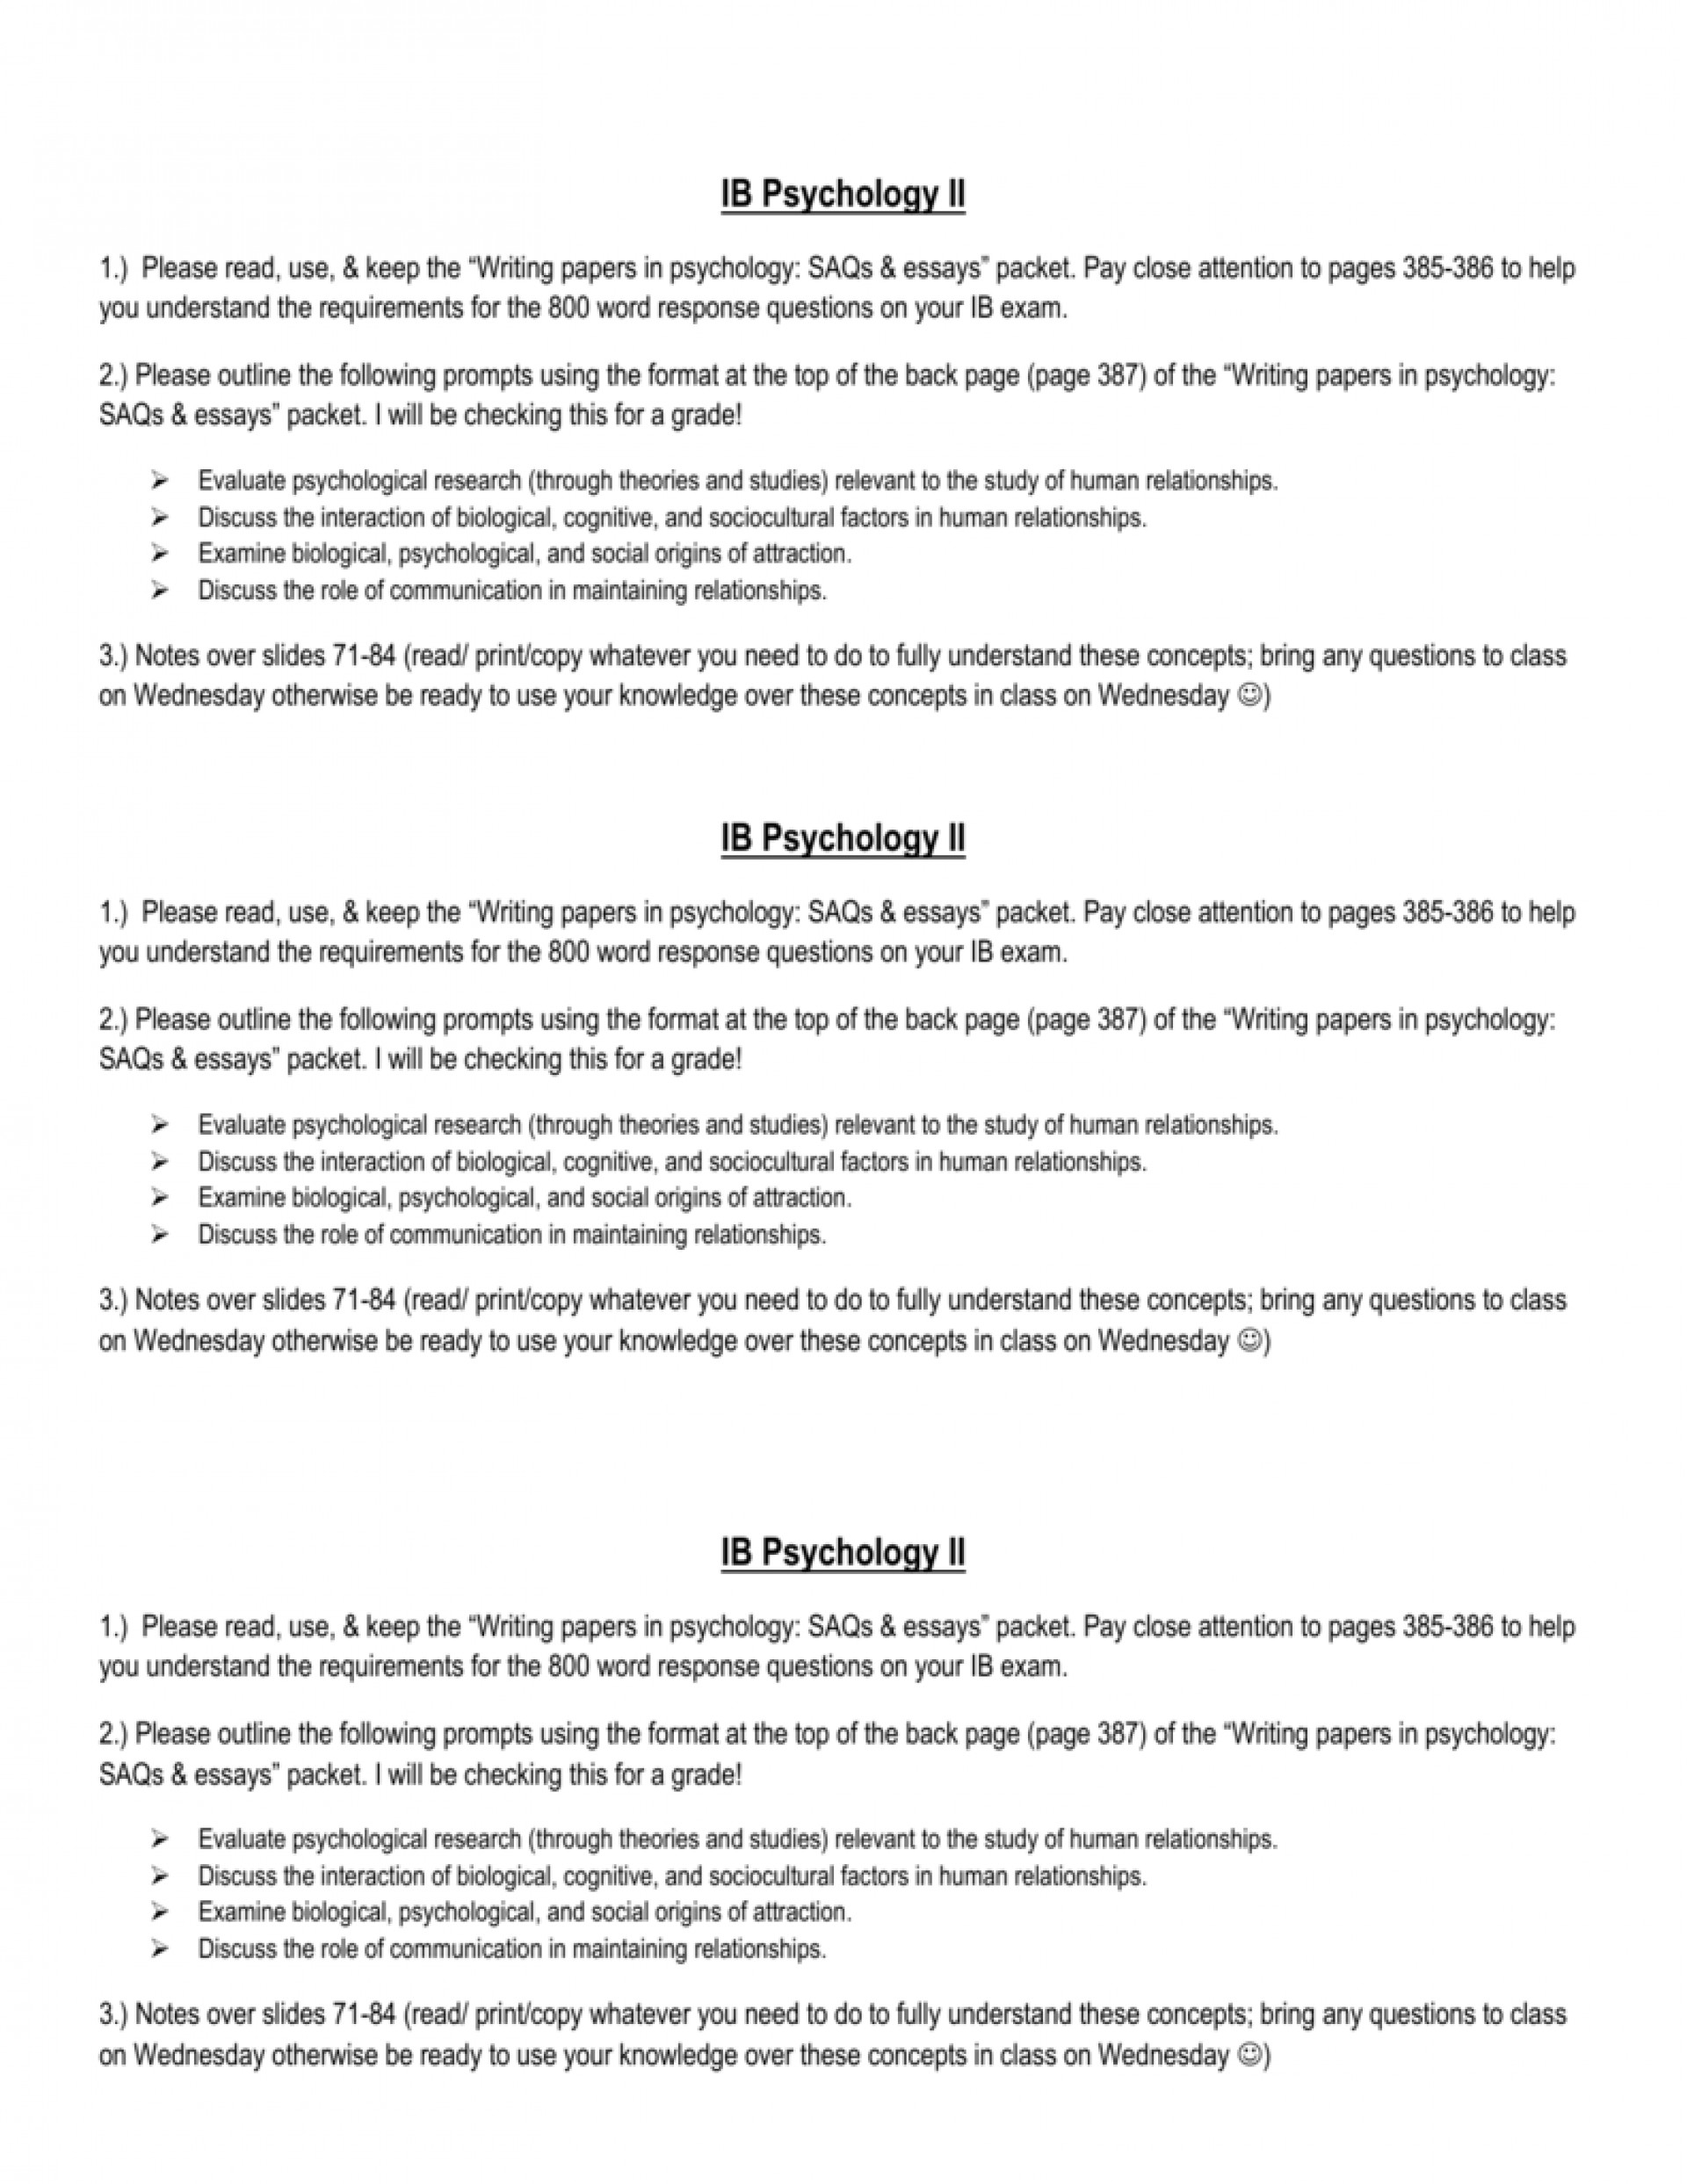 Wuthering Heights Essay Questions  Nursing School Application Essay Examples also Easy Expository Essay Topics  Free Research Paper On Social Psychology Essays Resume  Example Of Illustration Essay